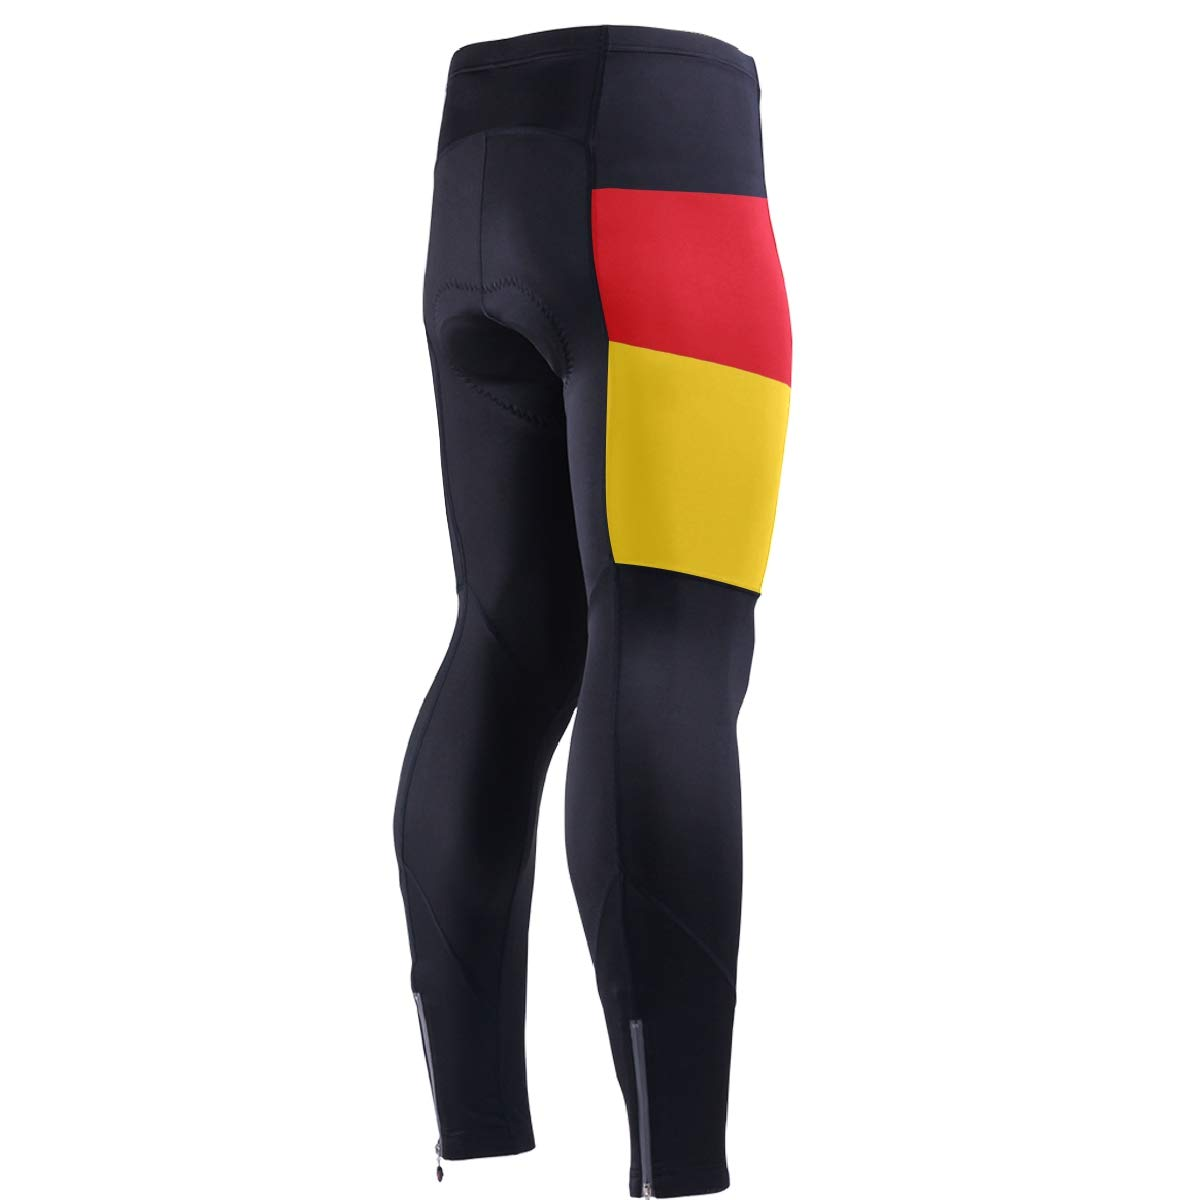 CHINEIN Men's Cycling Jersey Long Sleeve with 3 Rear Pockets Pants German Flag by CHINEIN